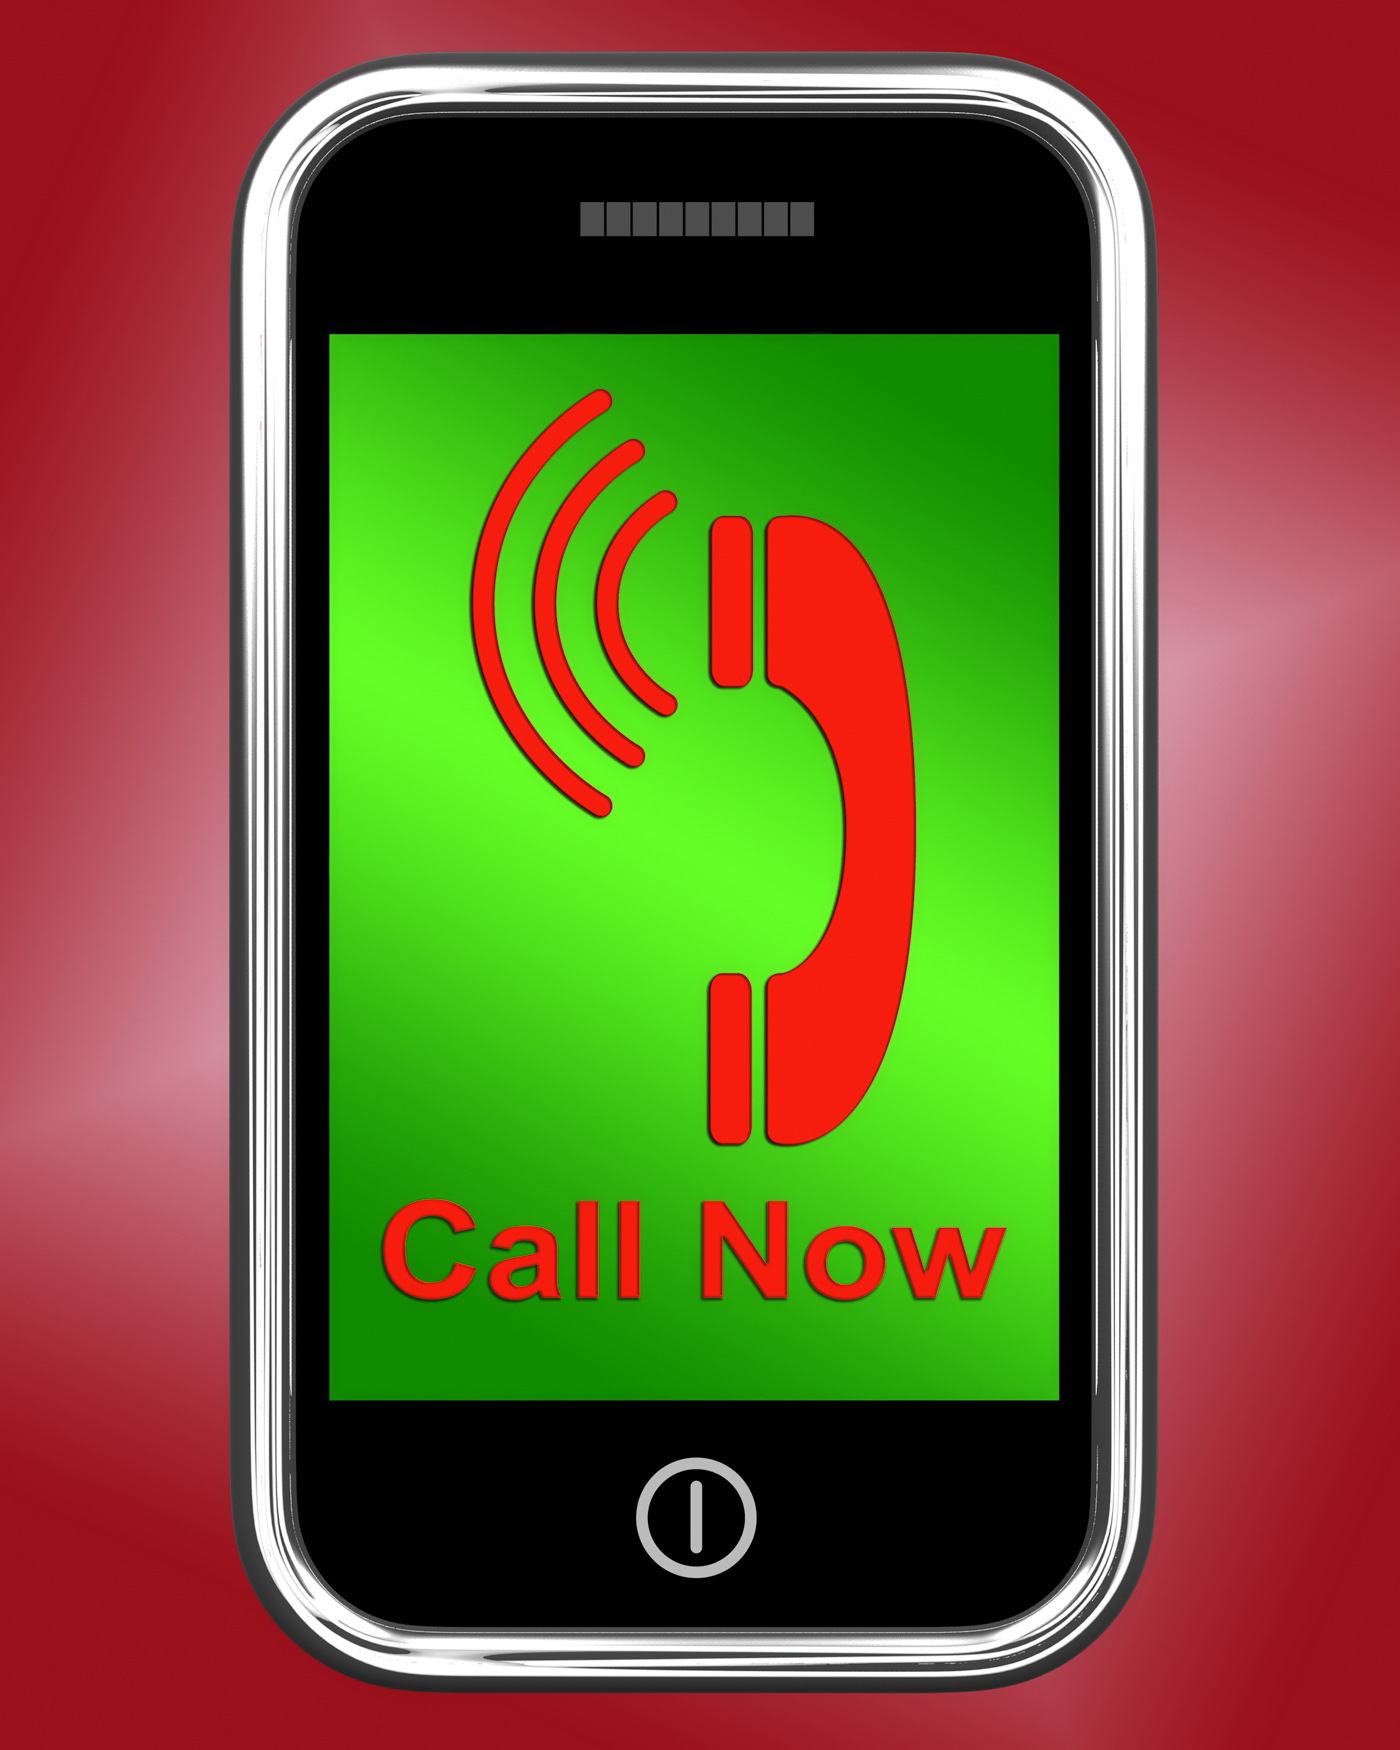 Call now on phone shows talk or chat photo